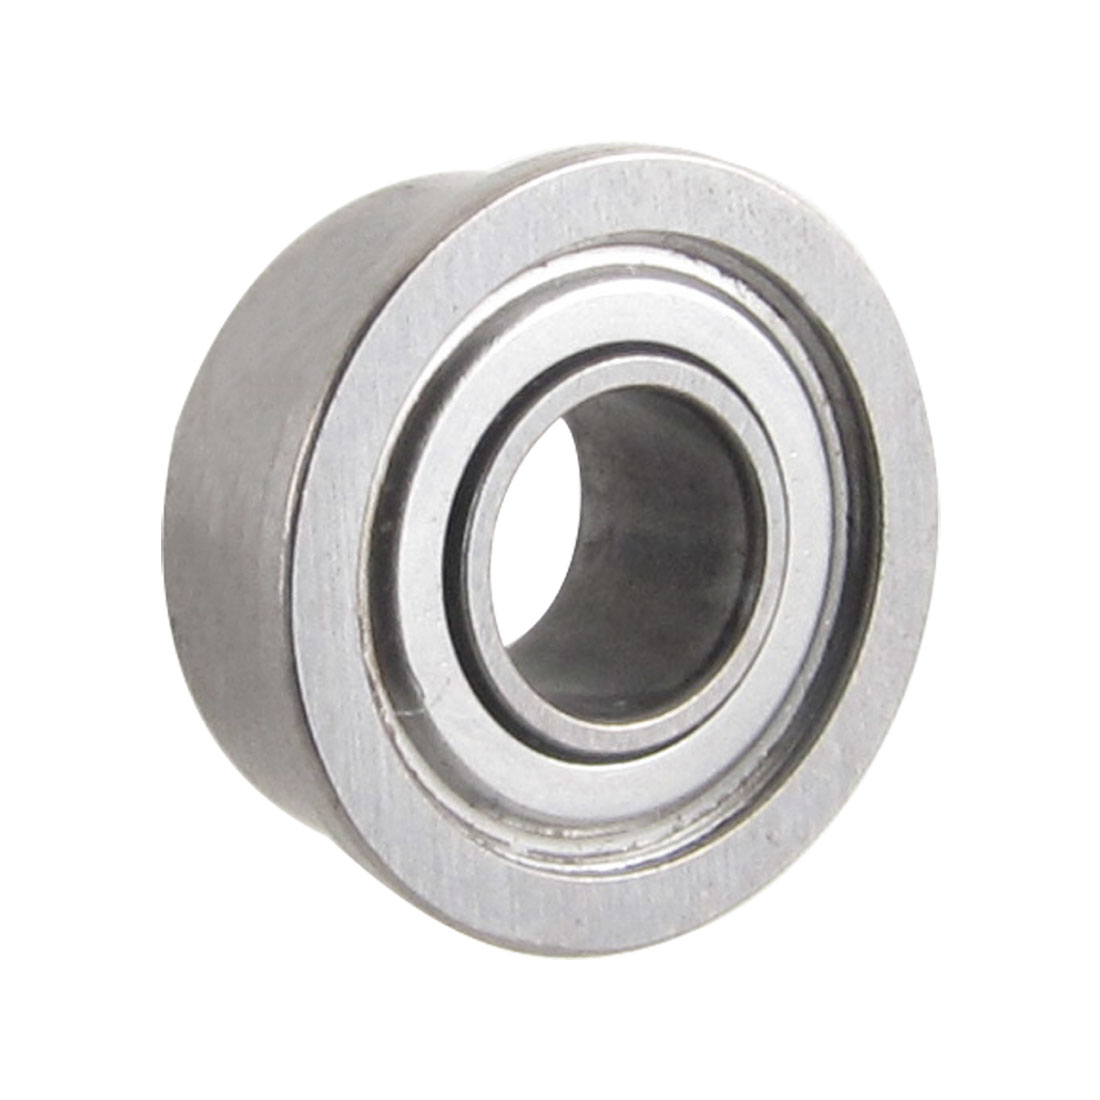 Flanged 5mm x 11mm x 5mm Metal Shields Deep Groove Ball Bearing